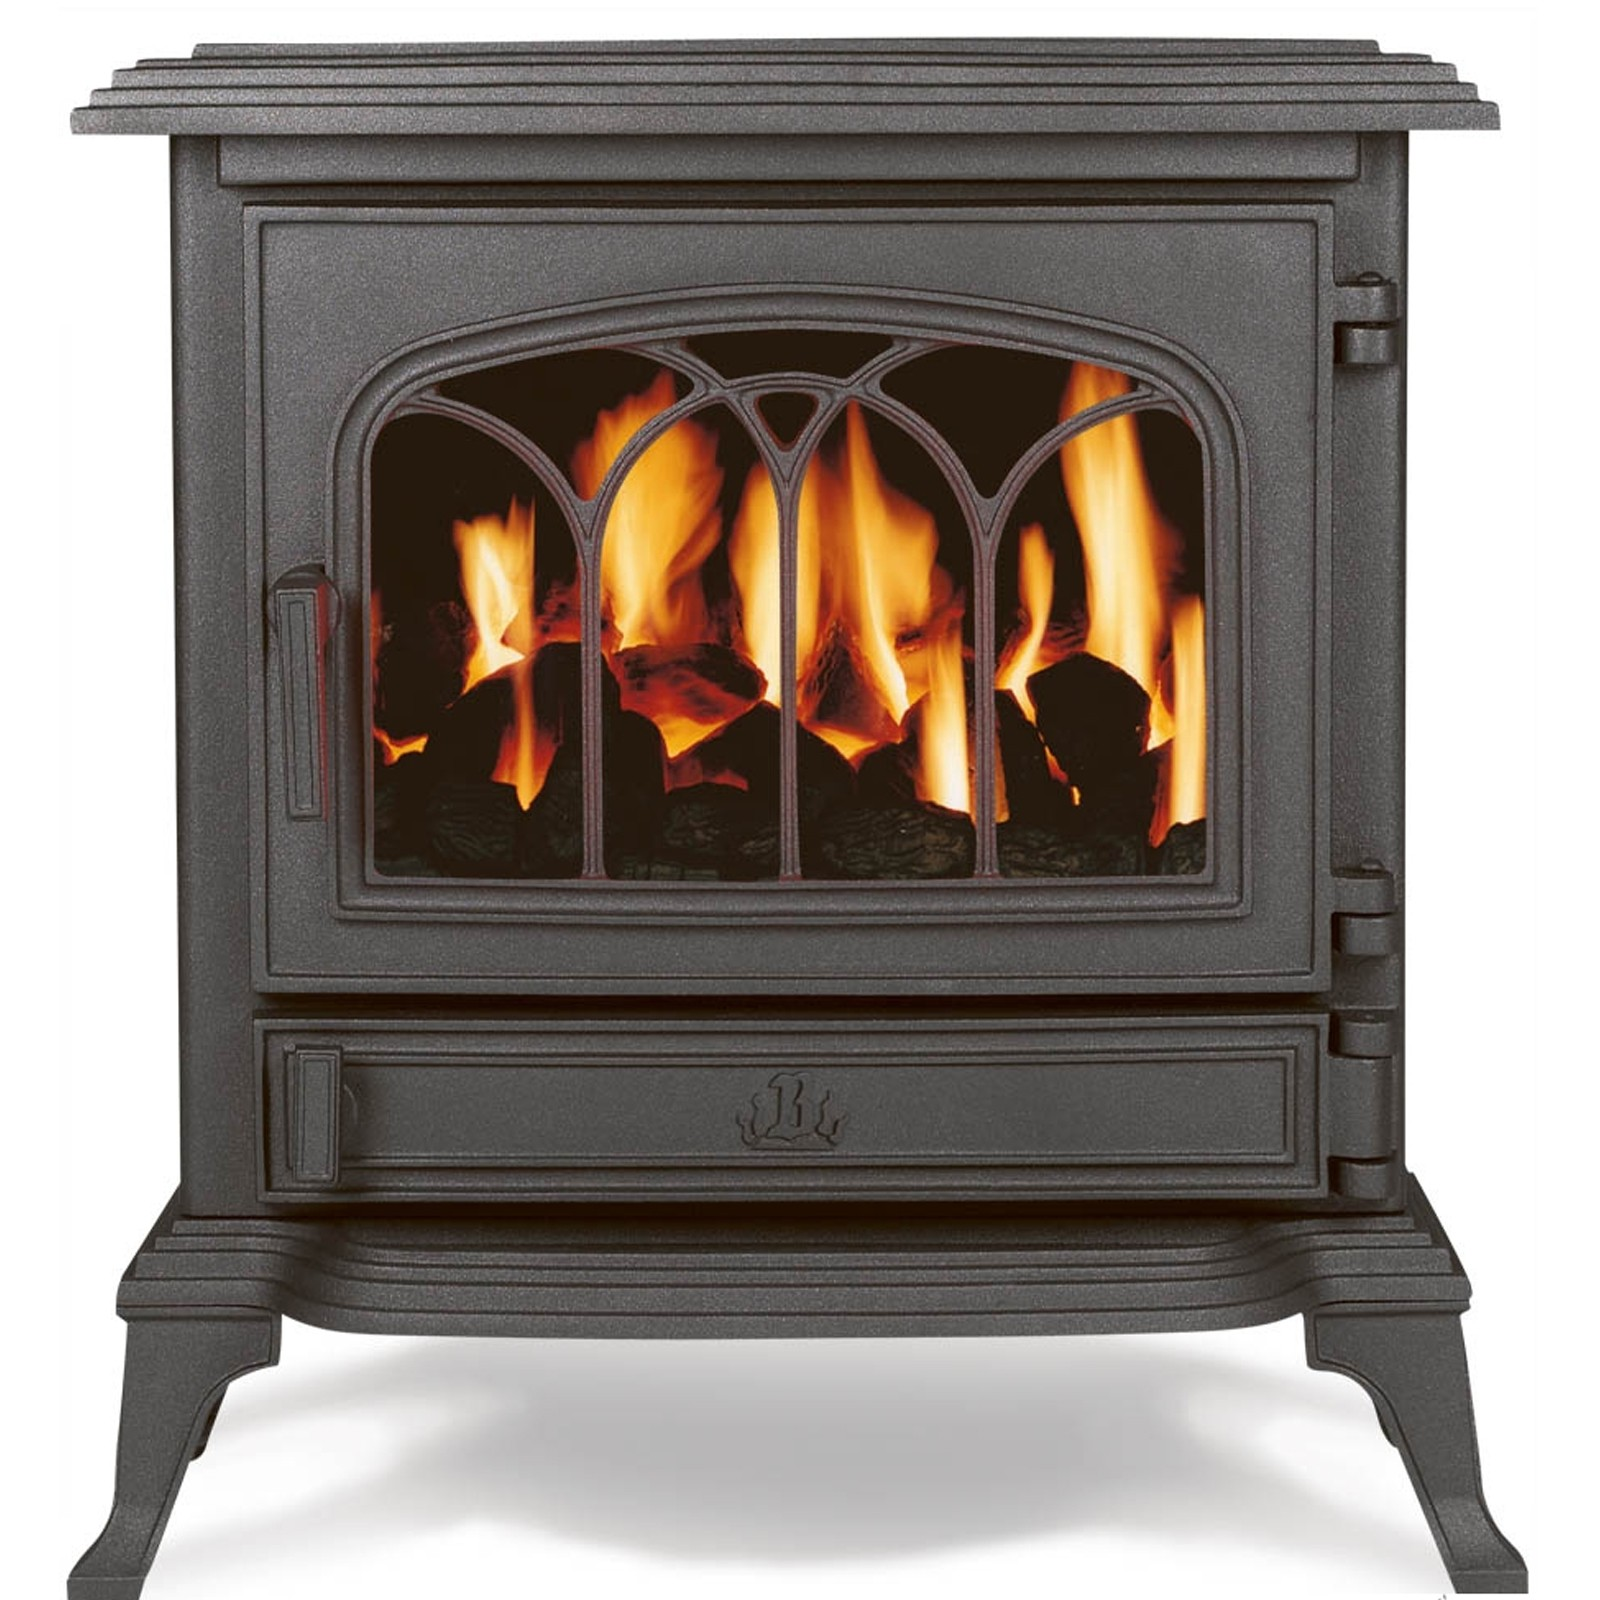 Low Prices Broseley Canterbury Slimline Electric Stove - Electric Stove Price